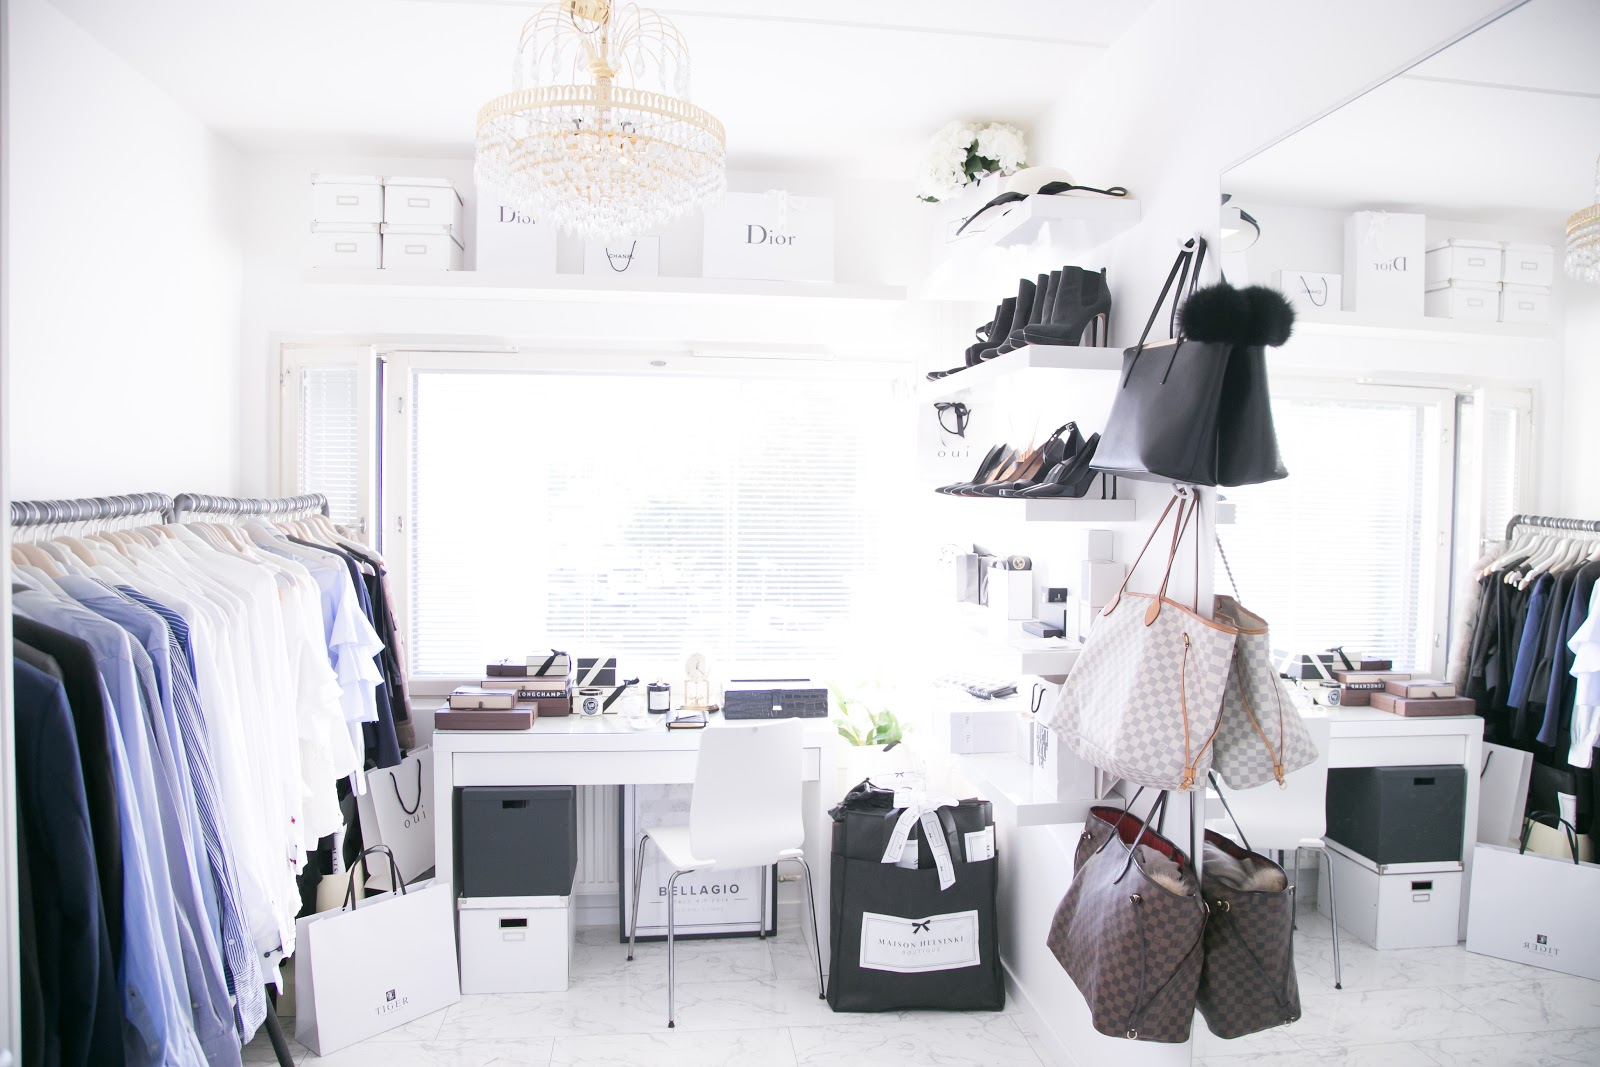 Our Walk-in closet and Home office